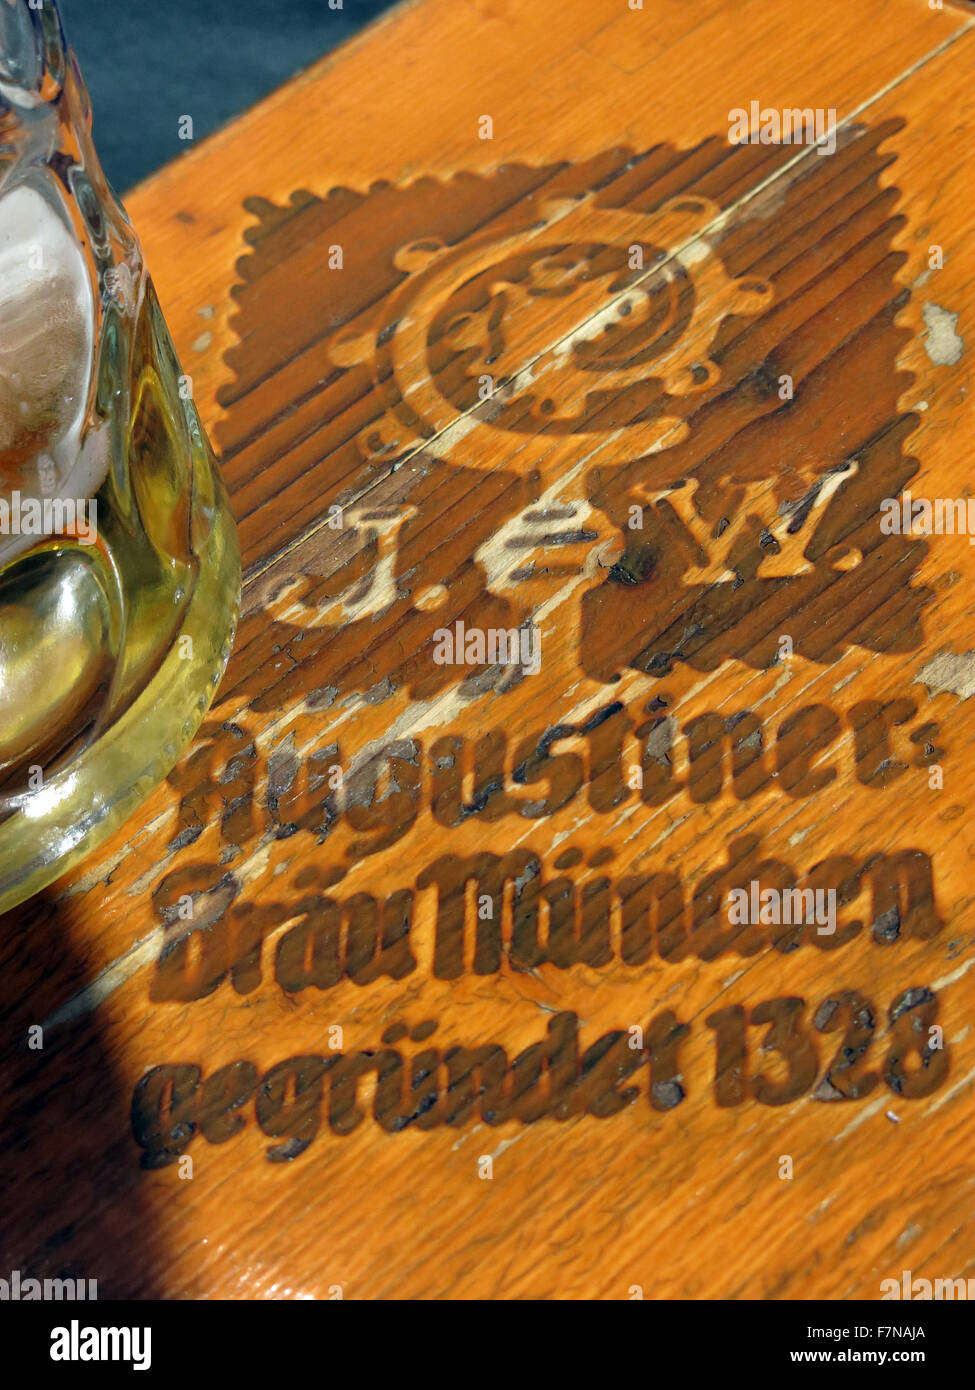 Augustiner Brau Munchen table at Oktoberfest,Munich,Bavaria,Germany - Stock Image